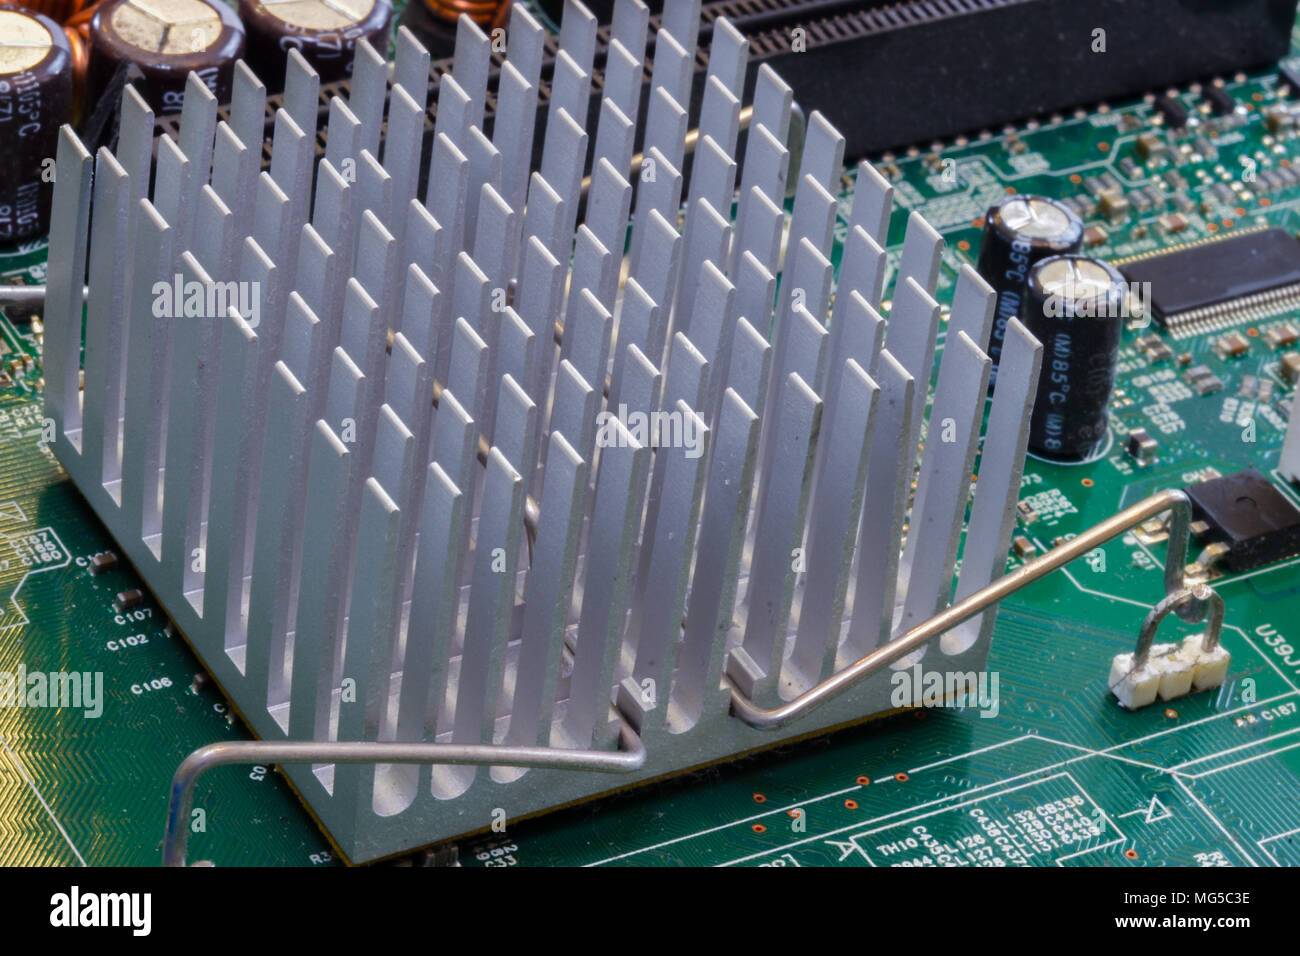 Macro photography of personal computer parts within the motherboard - Stock Image